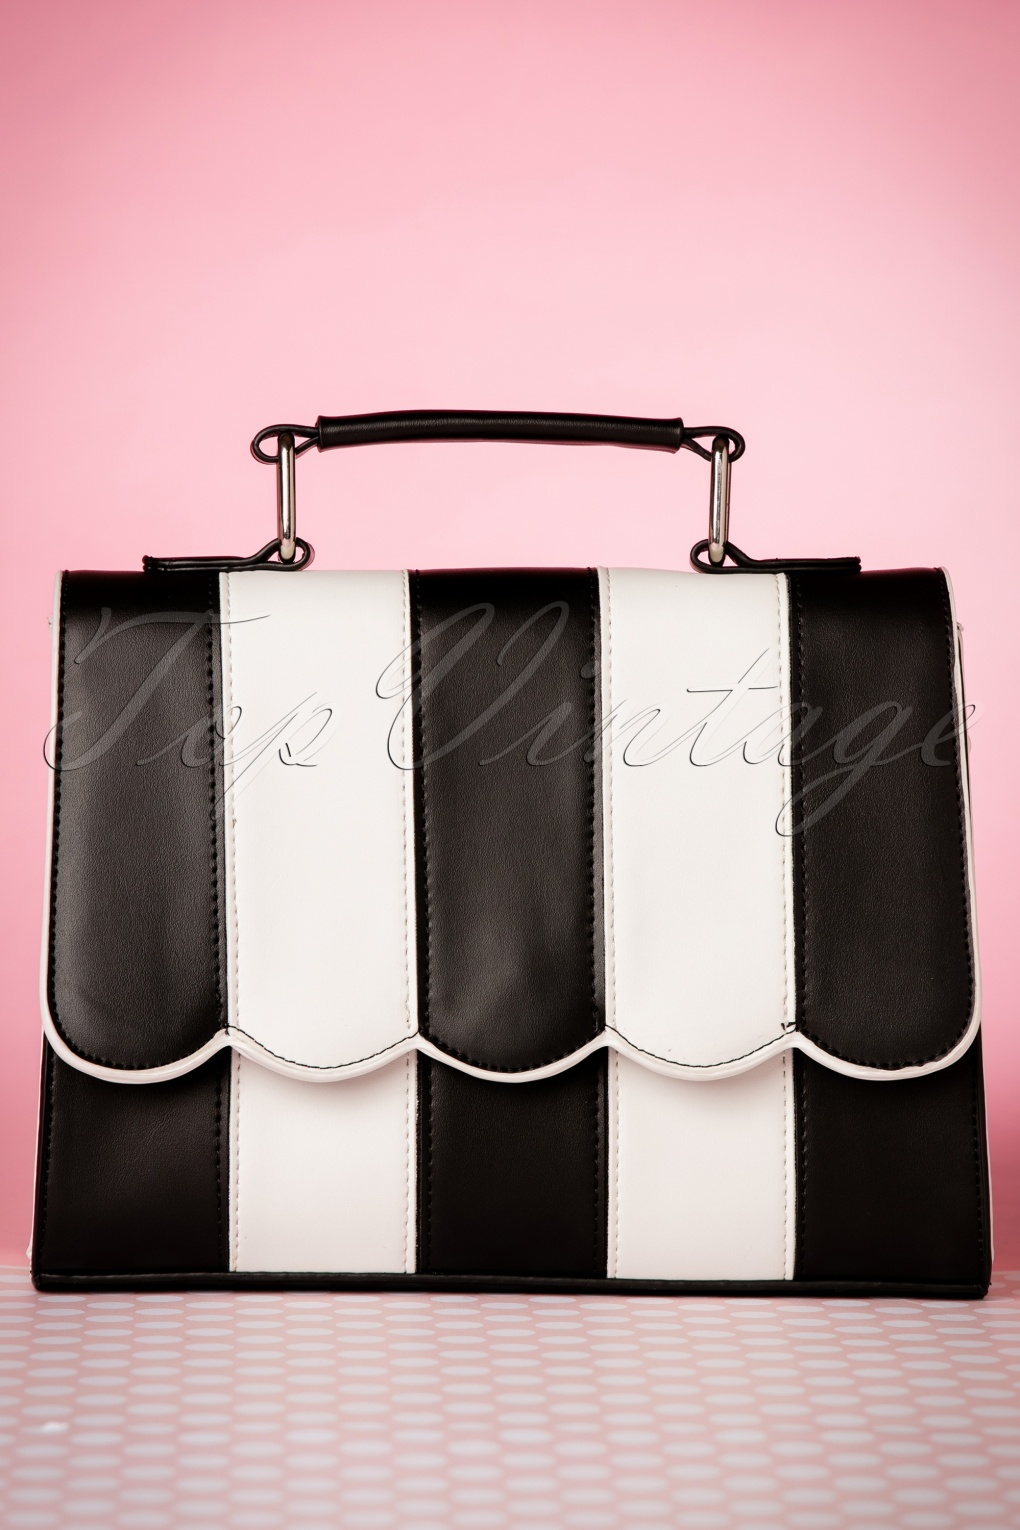 Retro Handbags, Purses, Wallets, Bags 50s Stella Striped Handbag in Black and White £55.16 AT vintagedancer.com